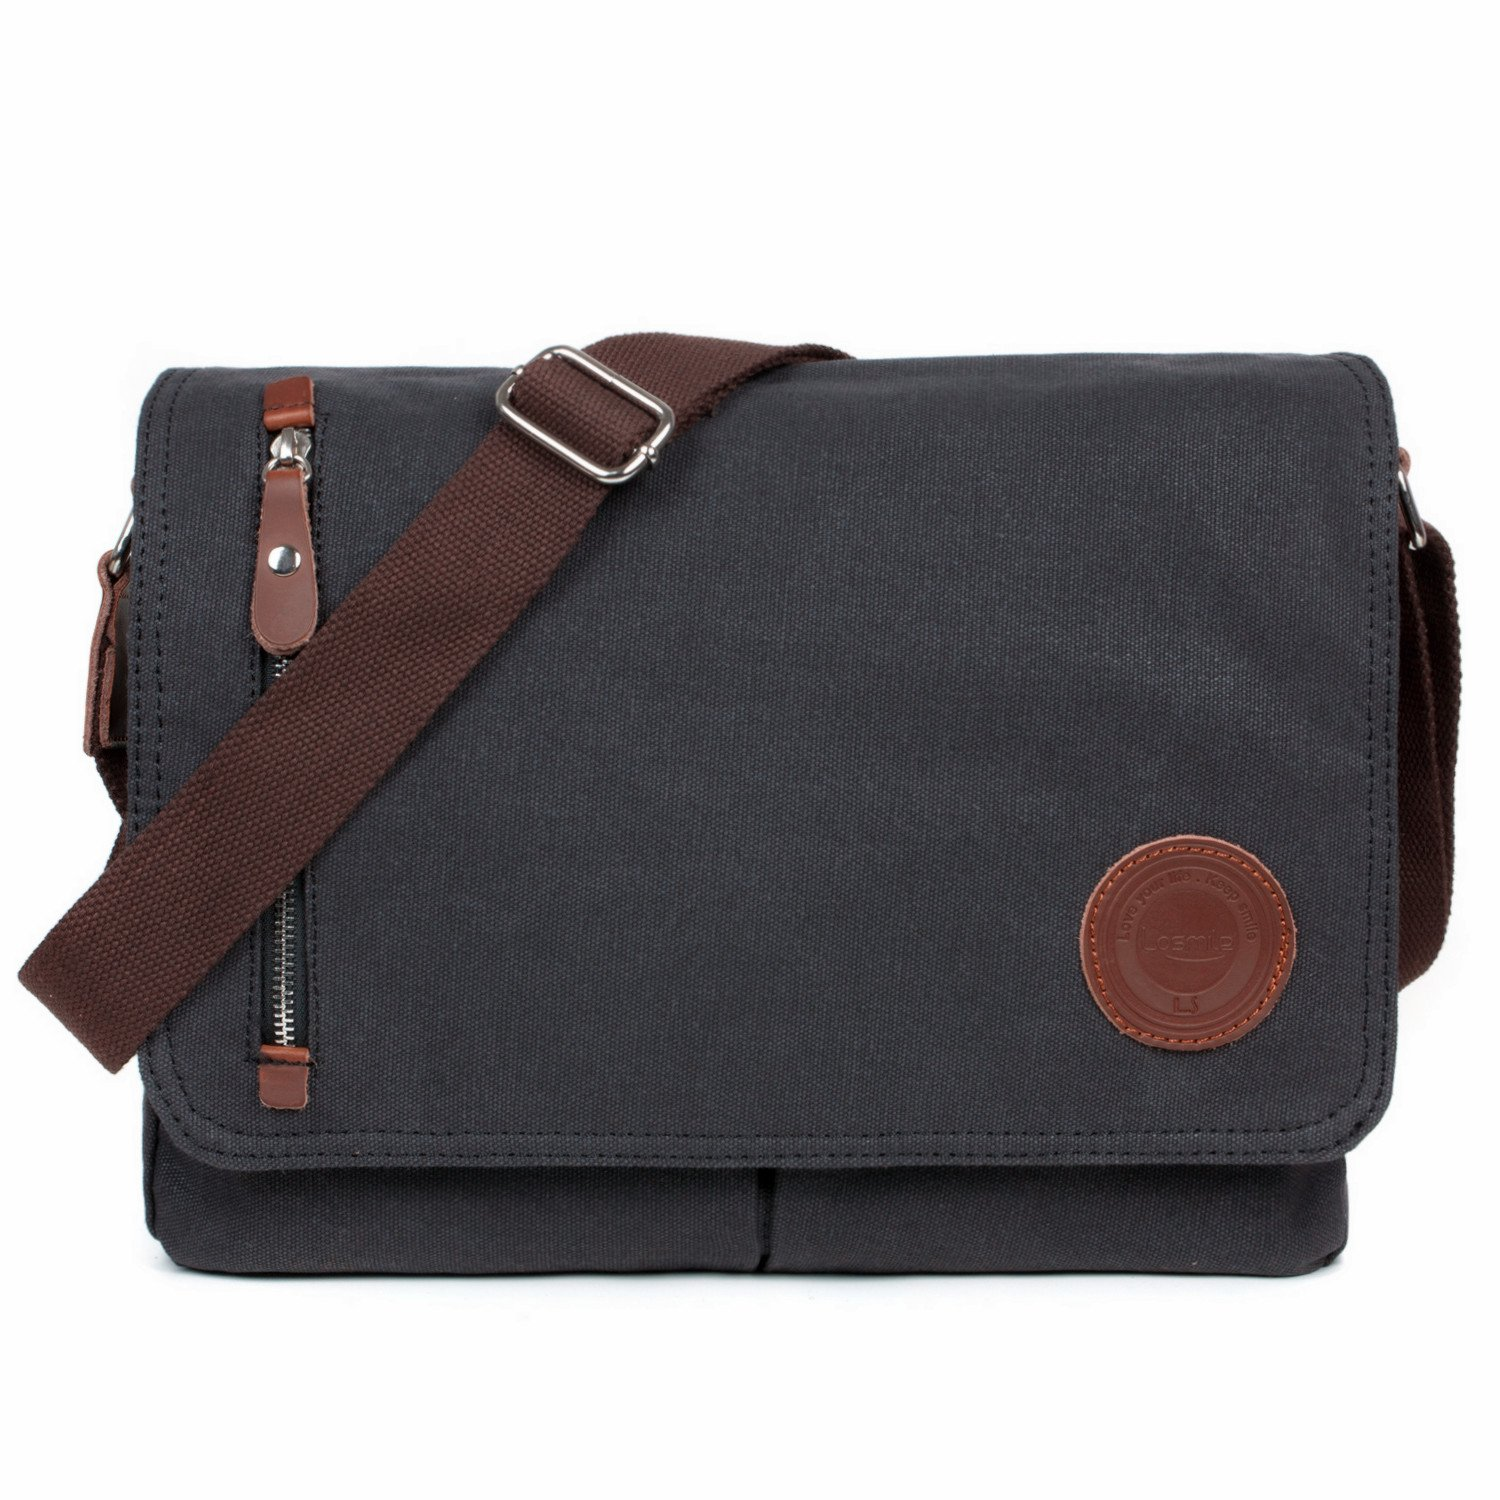 LOSMILE Mens Canvas Messenger Shoulder Bag. 3fb08f6f37372